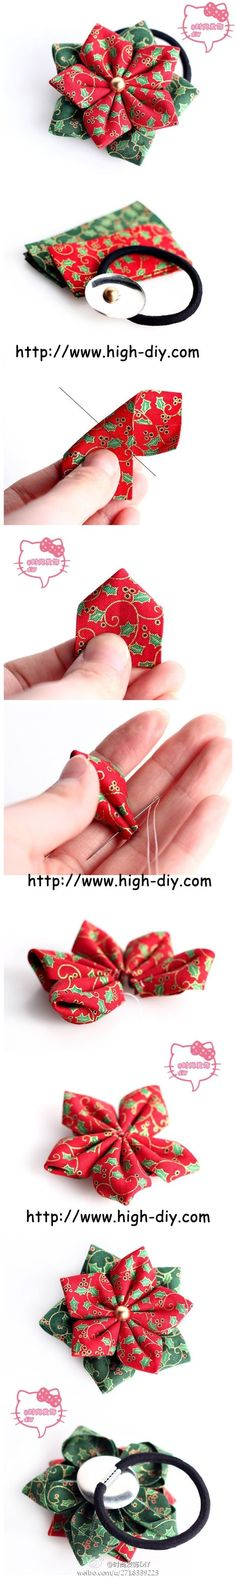 [Chinese] Kanzashi-like flower hair band. I can't understand the text, but the photo tutorial is quite straight-forward! Folded Fabric Ornaments, Quilted Ornaments, Xmas Ornaments, Christmas Sewing, Christmas Projects, Holiday Crafts, Christmas Crafts, Christmas Fabric, Ribbon Crafts